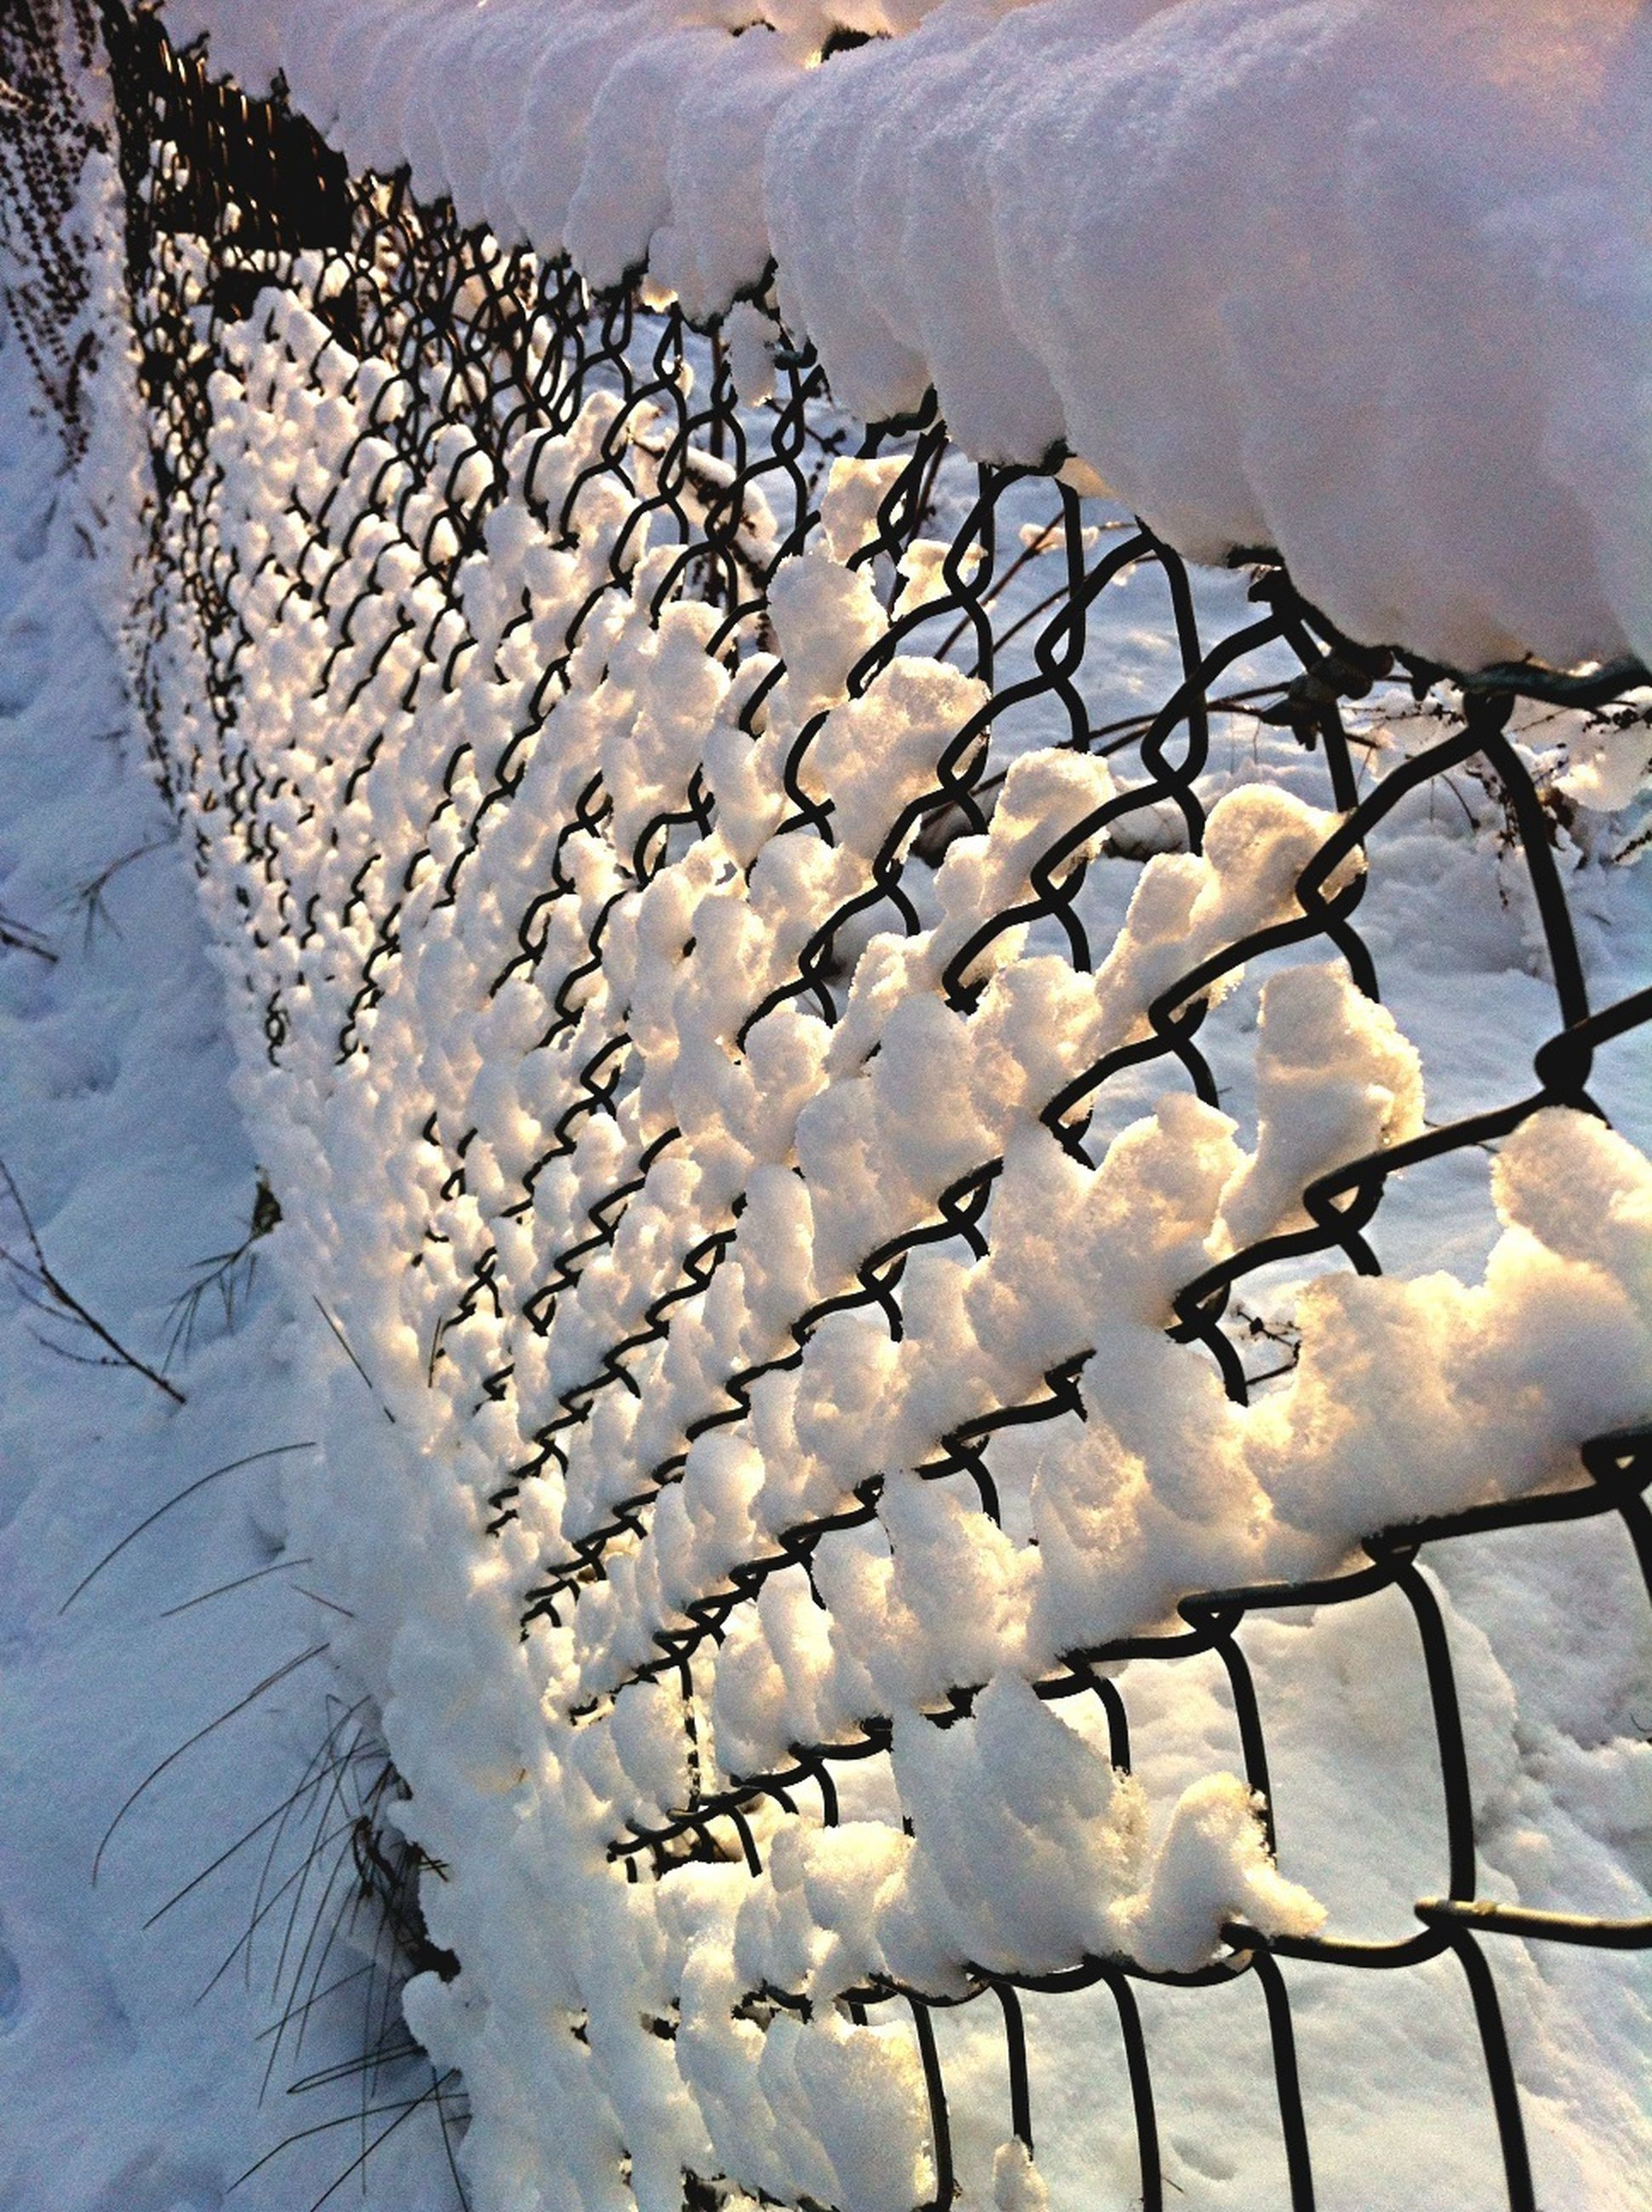 snow, winter, cold temperature, fence, water, protection, metal, weather, sky, season, safety, pattern, day, built structure, nature, outdoors, no people, frozen, railing, architecture